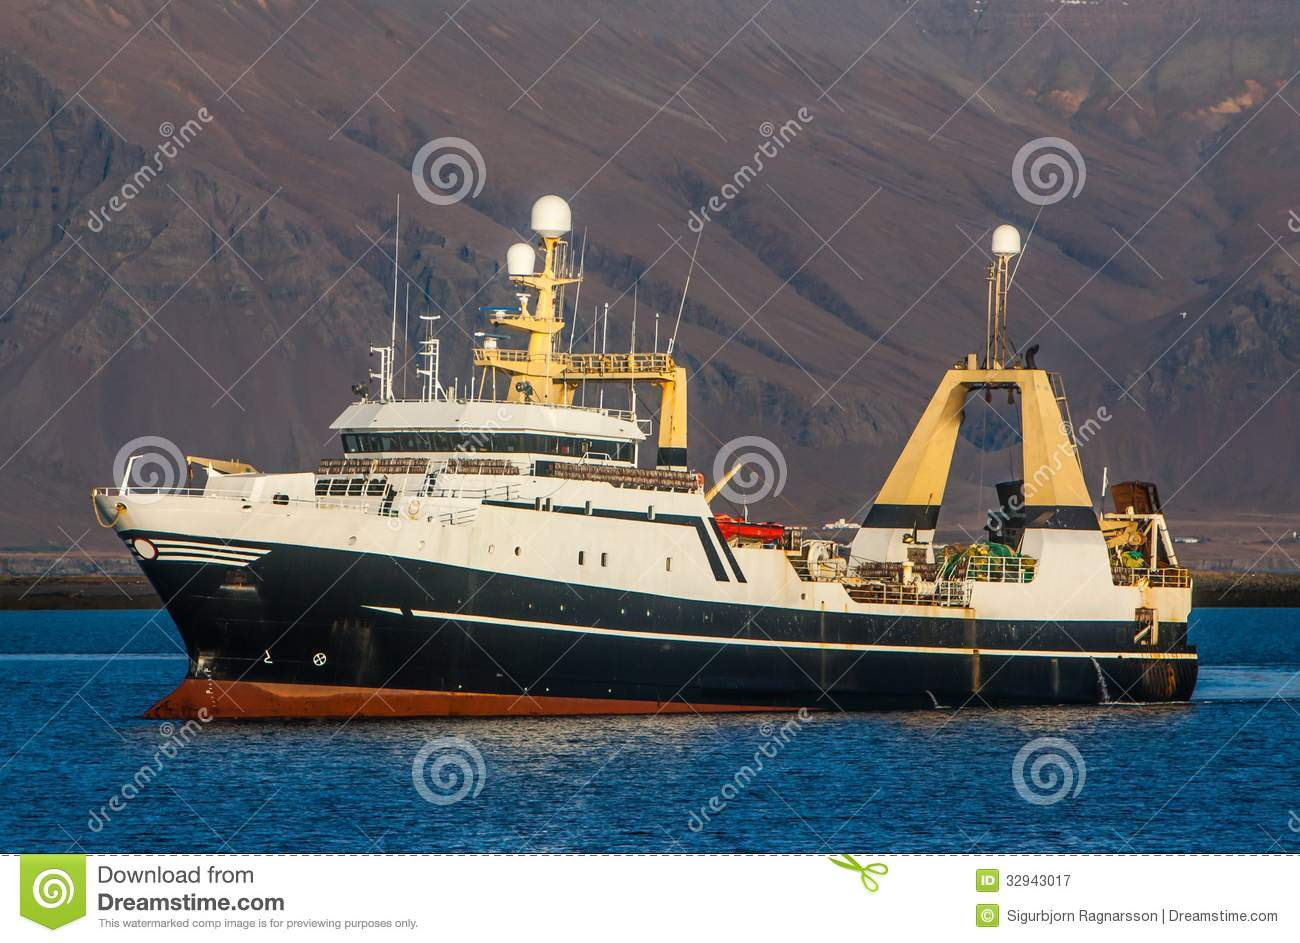 commercial fishing factory stern trawler from the Faroe Islands